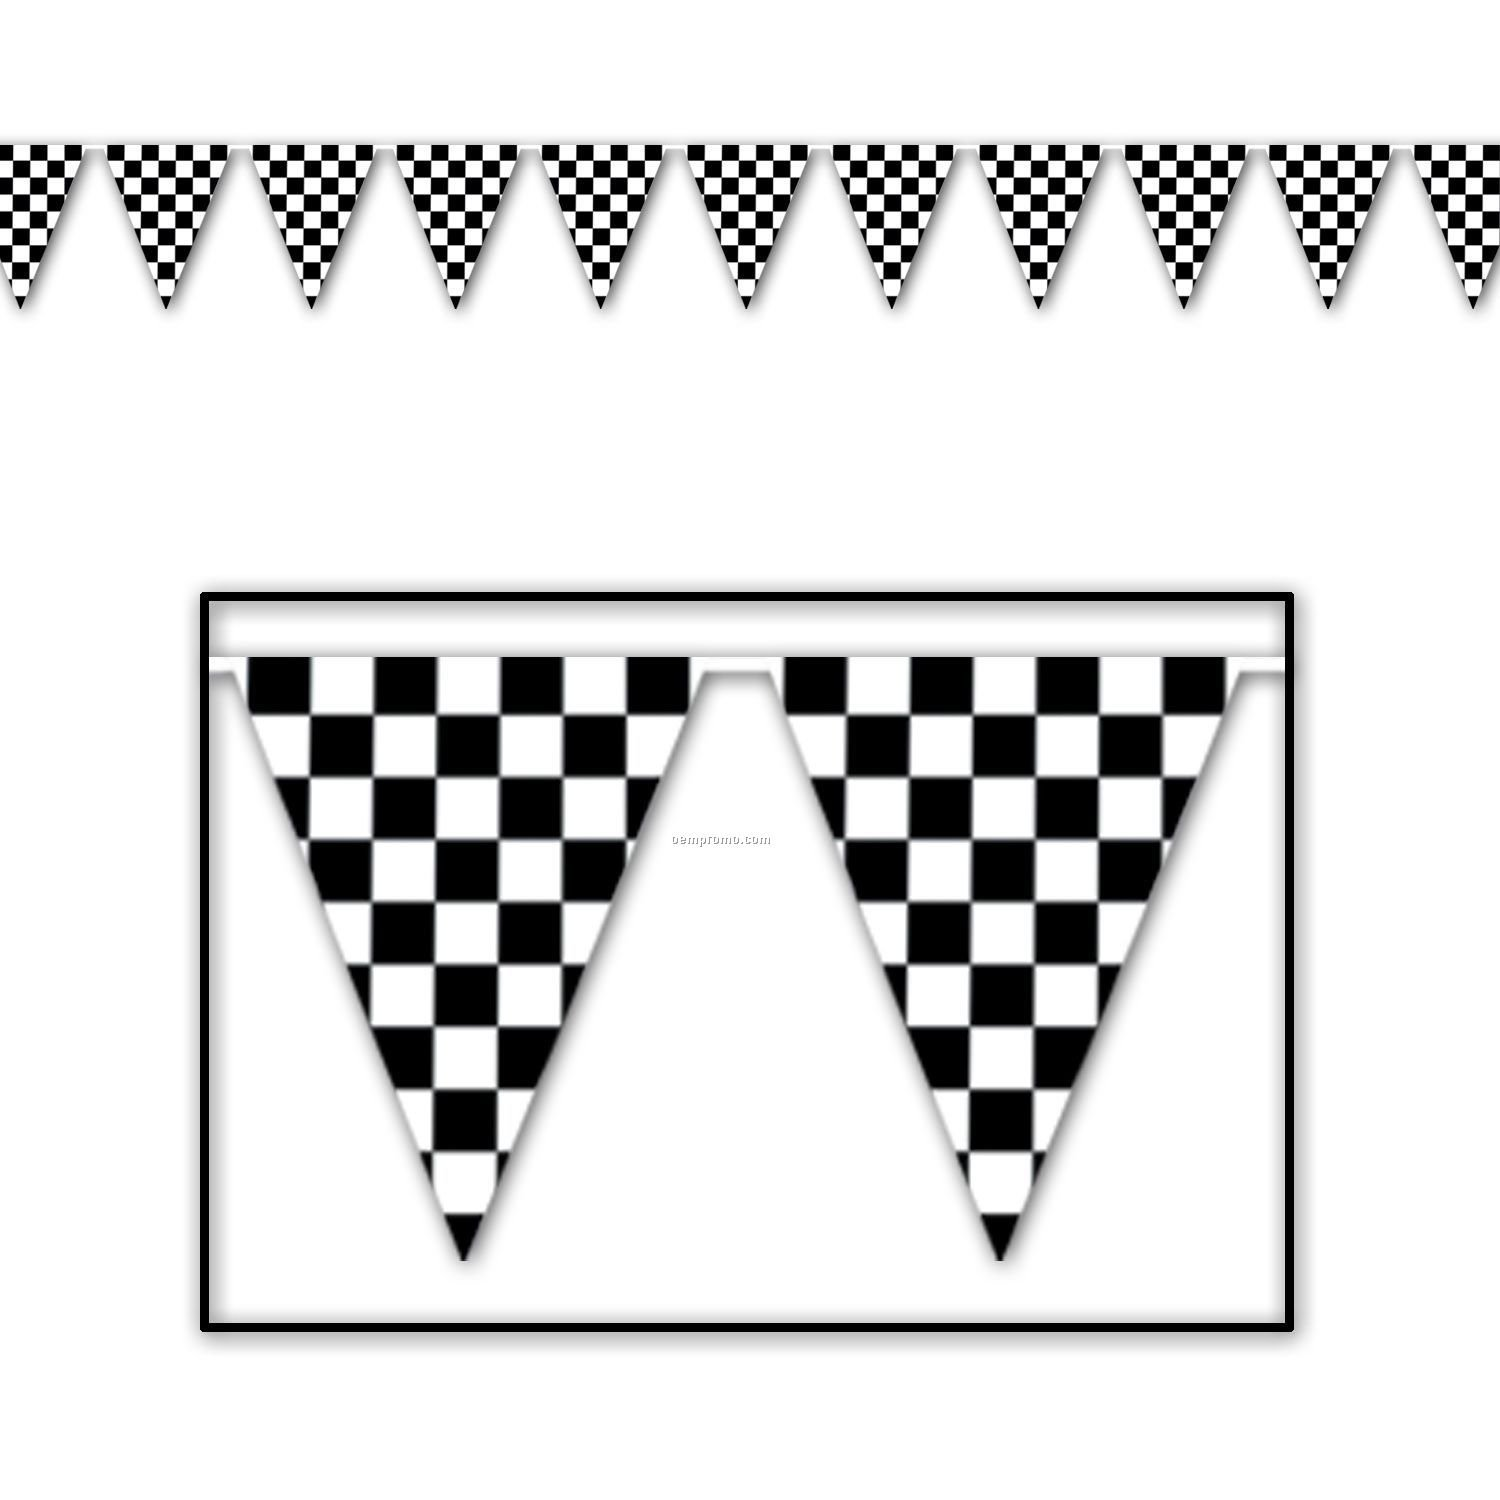 500 Ft Checkered Flag Banner Pennant Car Racing Party (5 packs) by Fun Express (Image #3)